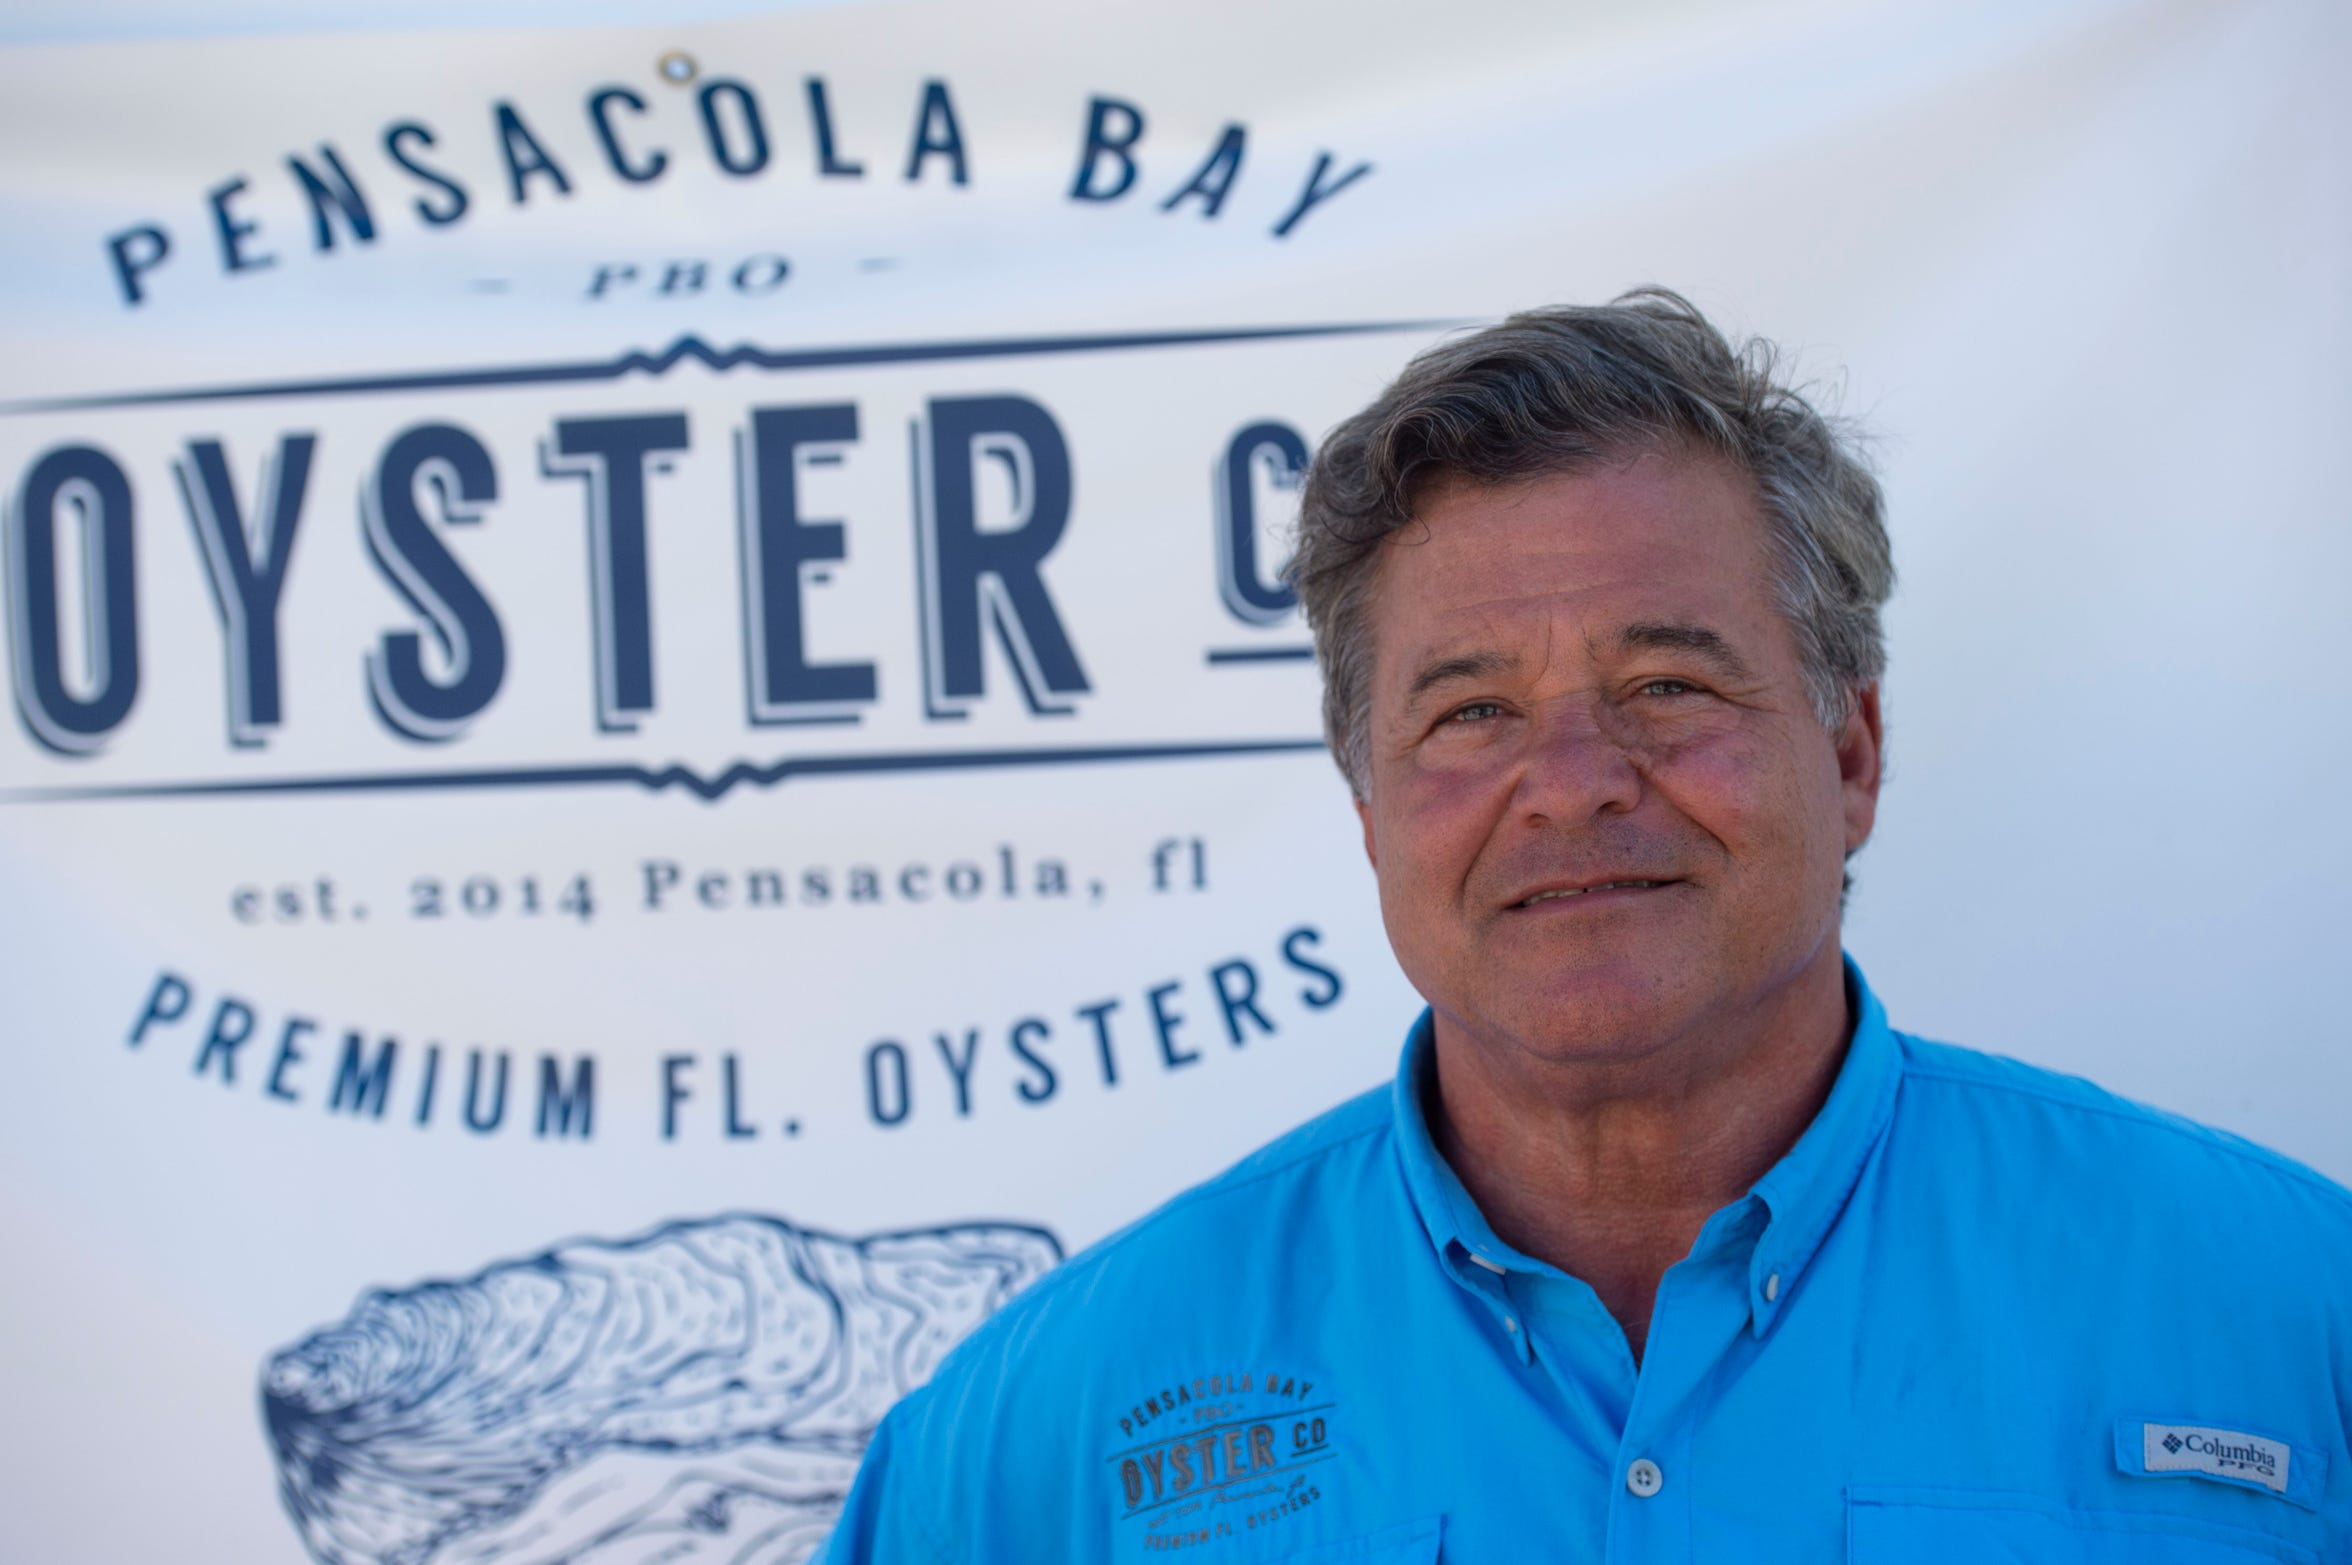 "Donnie McMahon, 64, of Pensacola, founded Pensacola Bay Oyster Co. in 2013 after noticing a need for more water-filtering bivalve mollusks when hurricanes and the 2010 Deepwater Horizon oil spill in the Gulf of Mexico damaged natural oyster beds. Following the environmental tragedies, McMahon recognized possibilities for revitalization in the Florida Panhandle. ""There's been a lot of opportunity for us. Up here in Northwest Florida, we experienced the the BP (Deepwater) Horizon catastrophe in combination with the worst economic downturn in our history. We've emerged from that being one of the lowest areas of unemployment in the state, and a lot of good business growth,"" McMahon said."